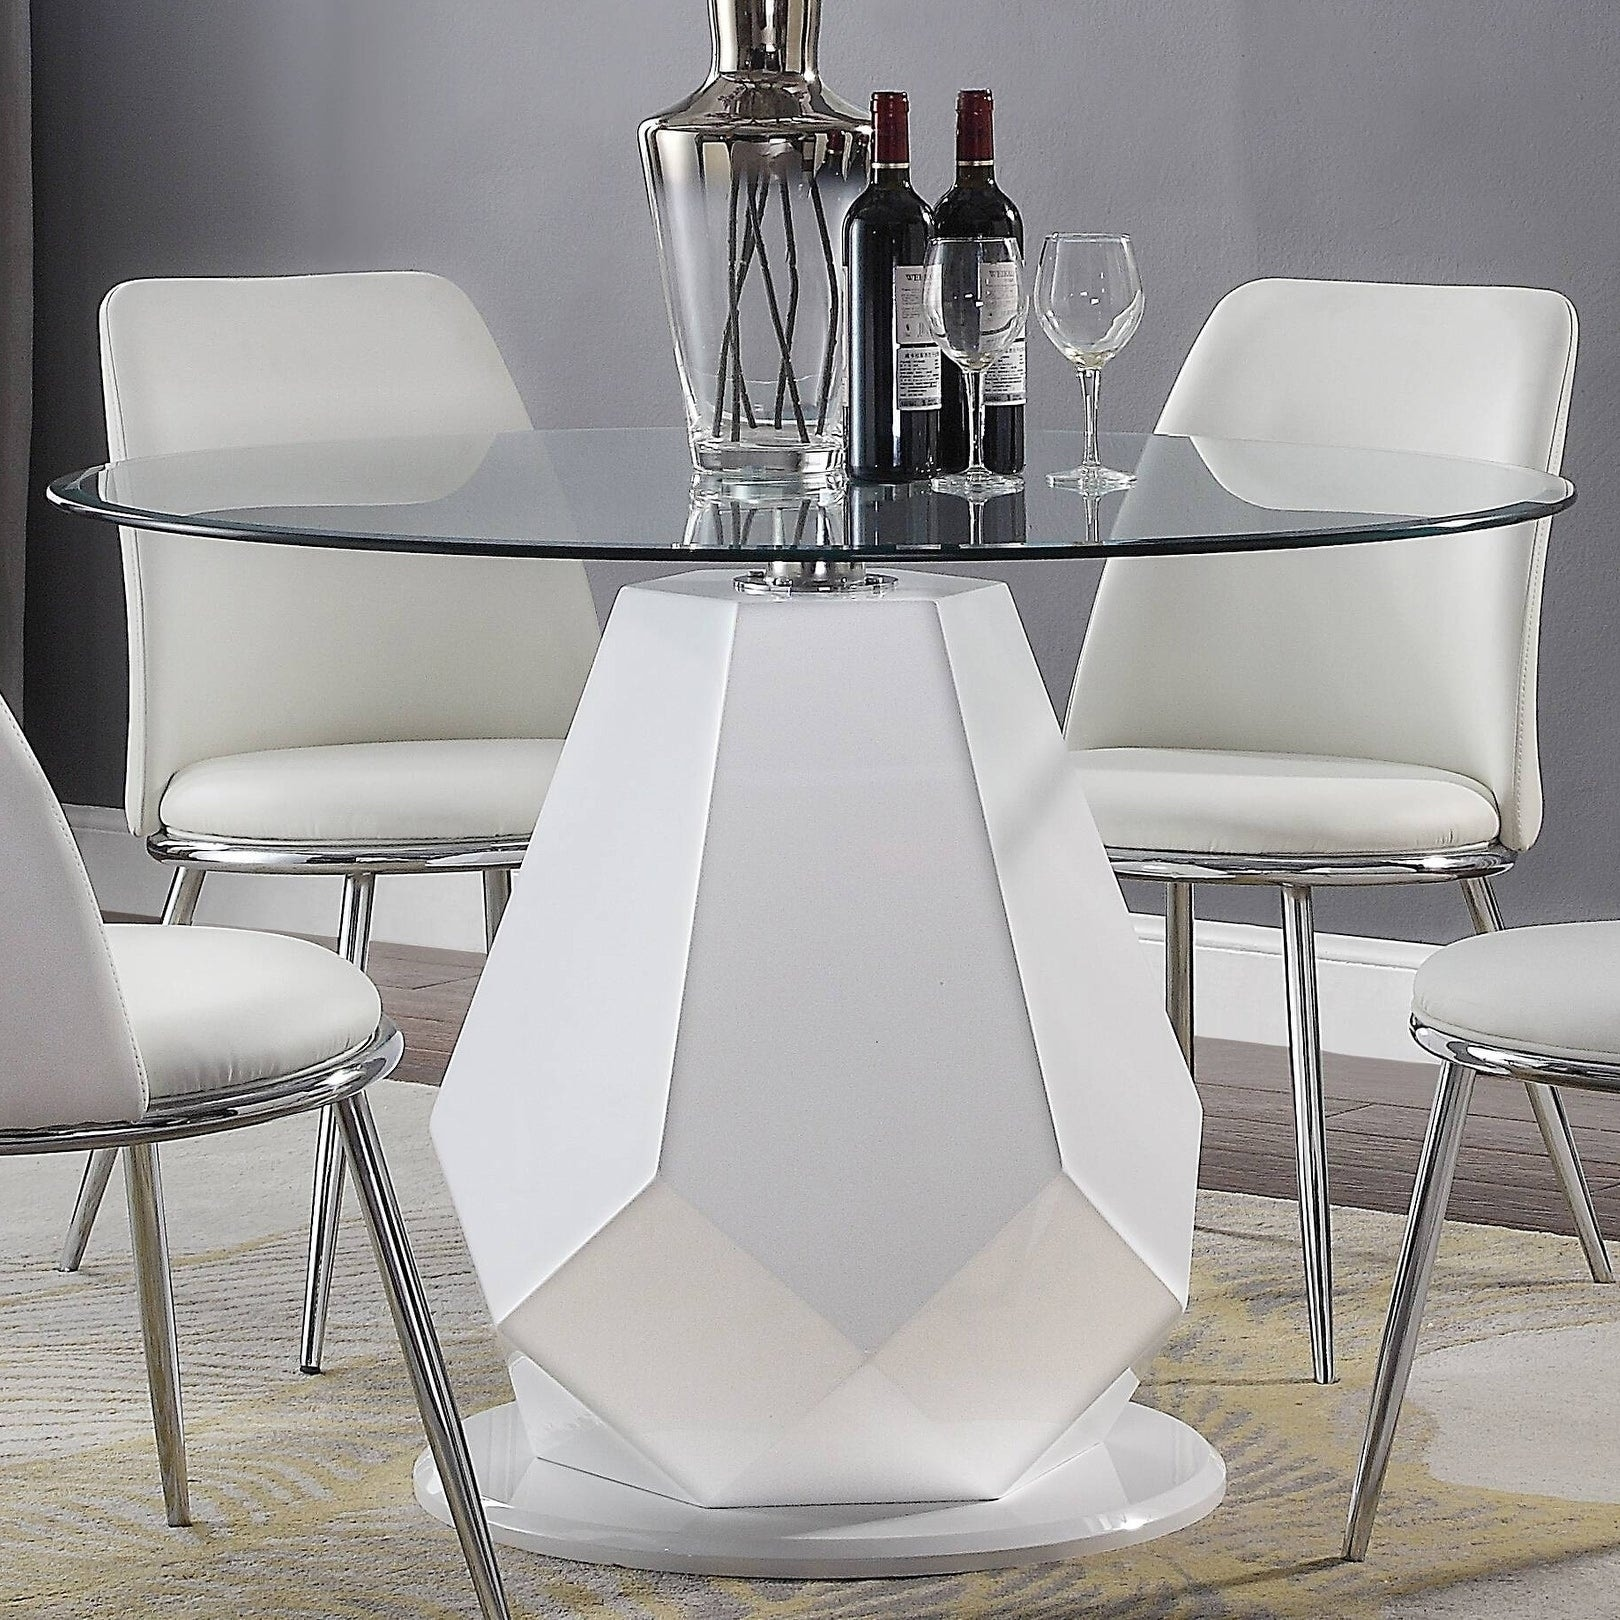 Silver Orchid Brody White High Gloss Dining Table Overstock 28232572